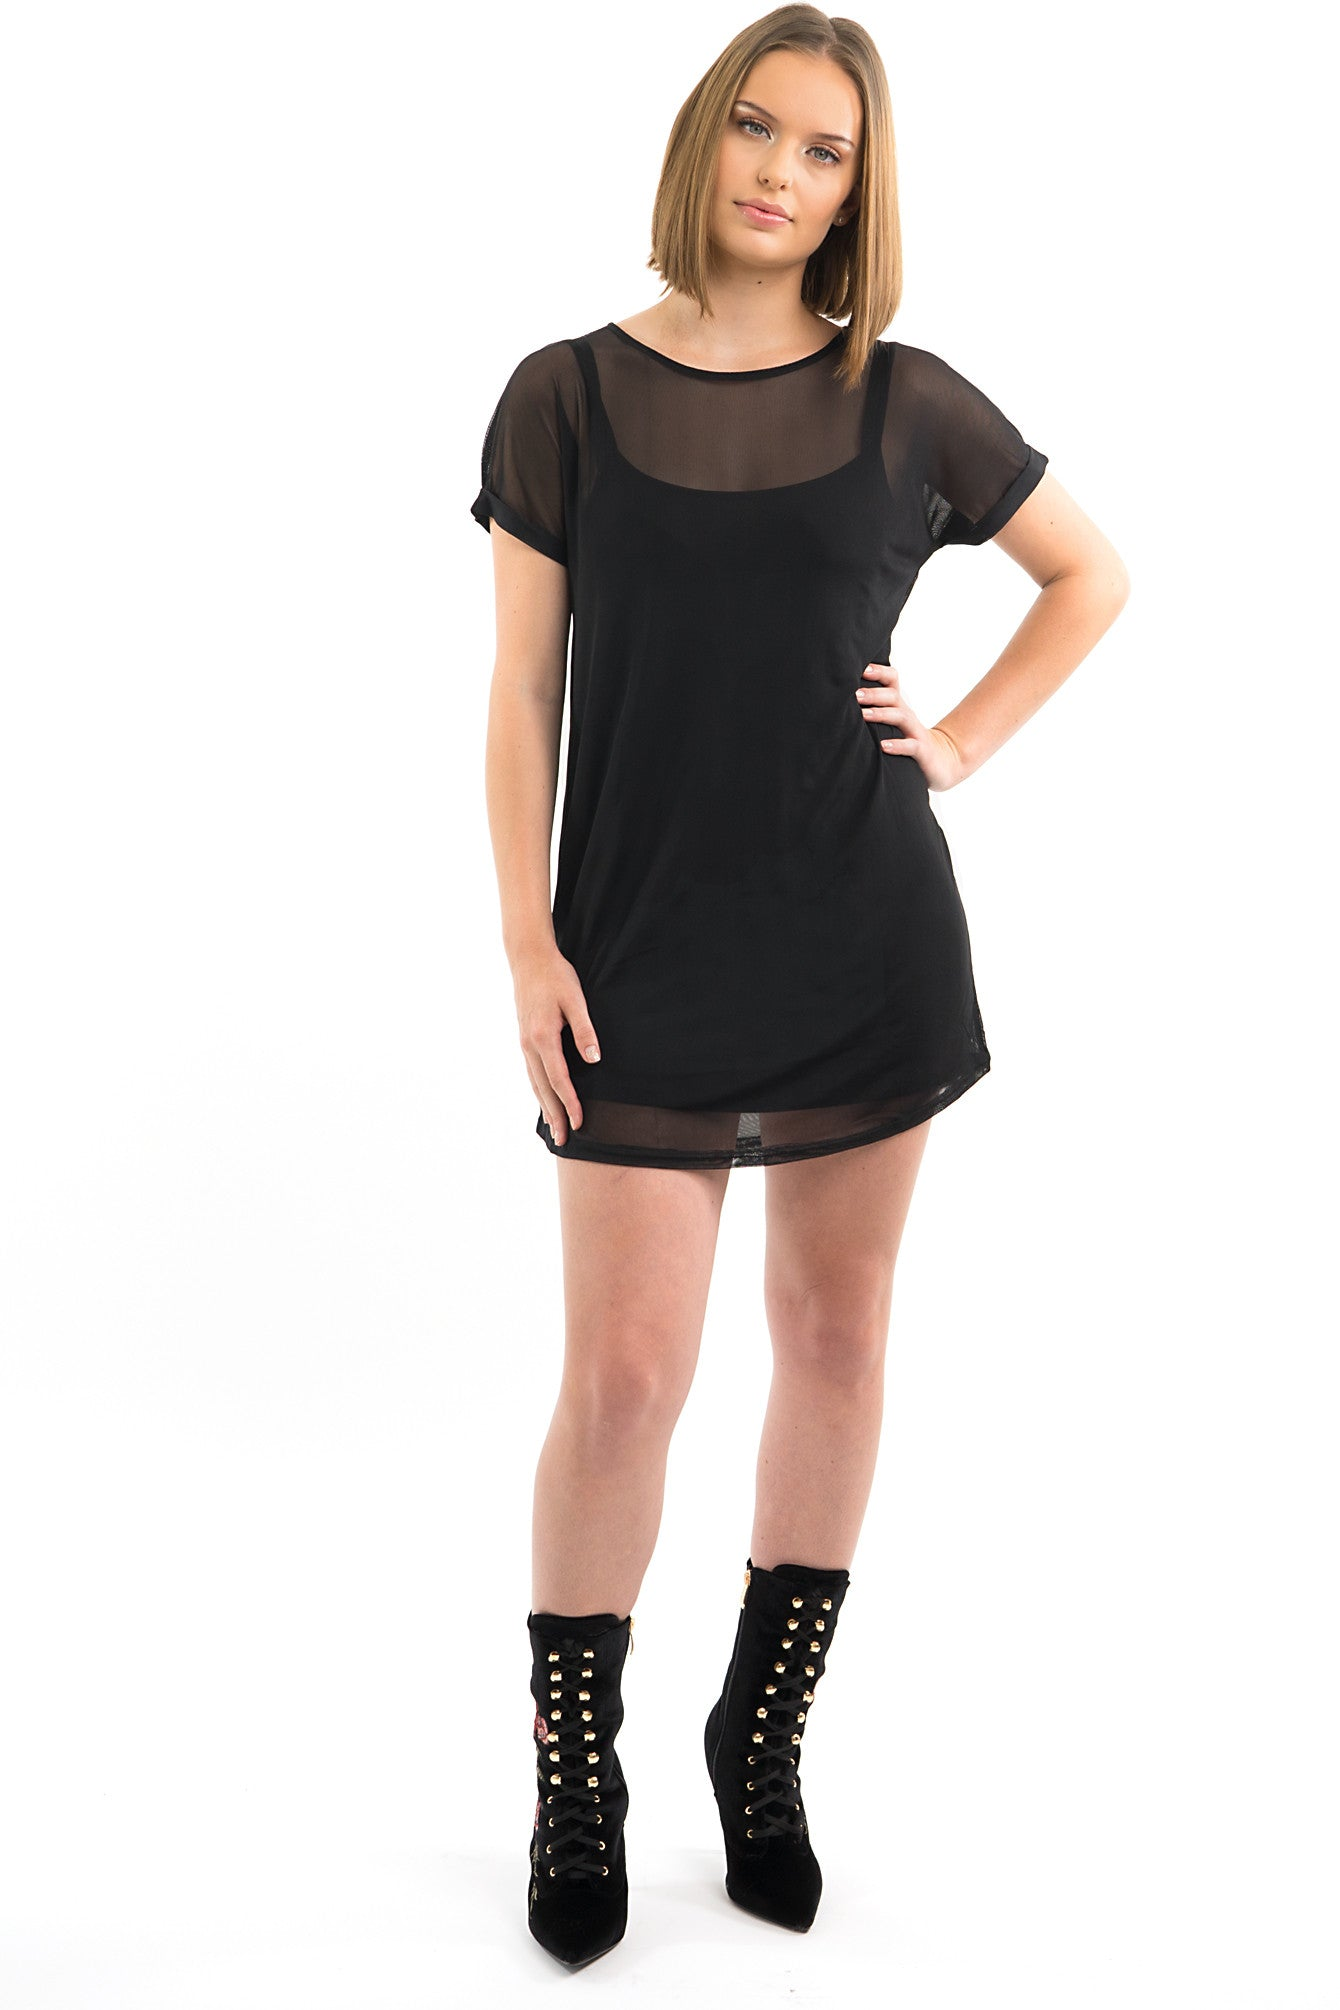 Black Short Sleeve Mesh T-Shirt Dress